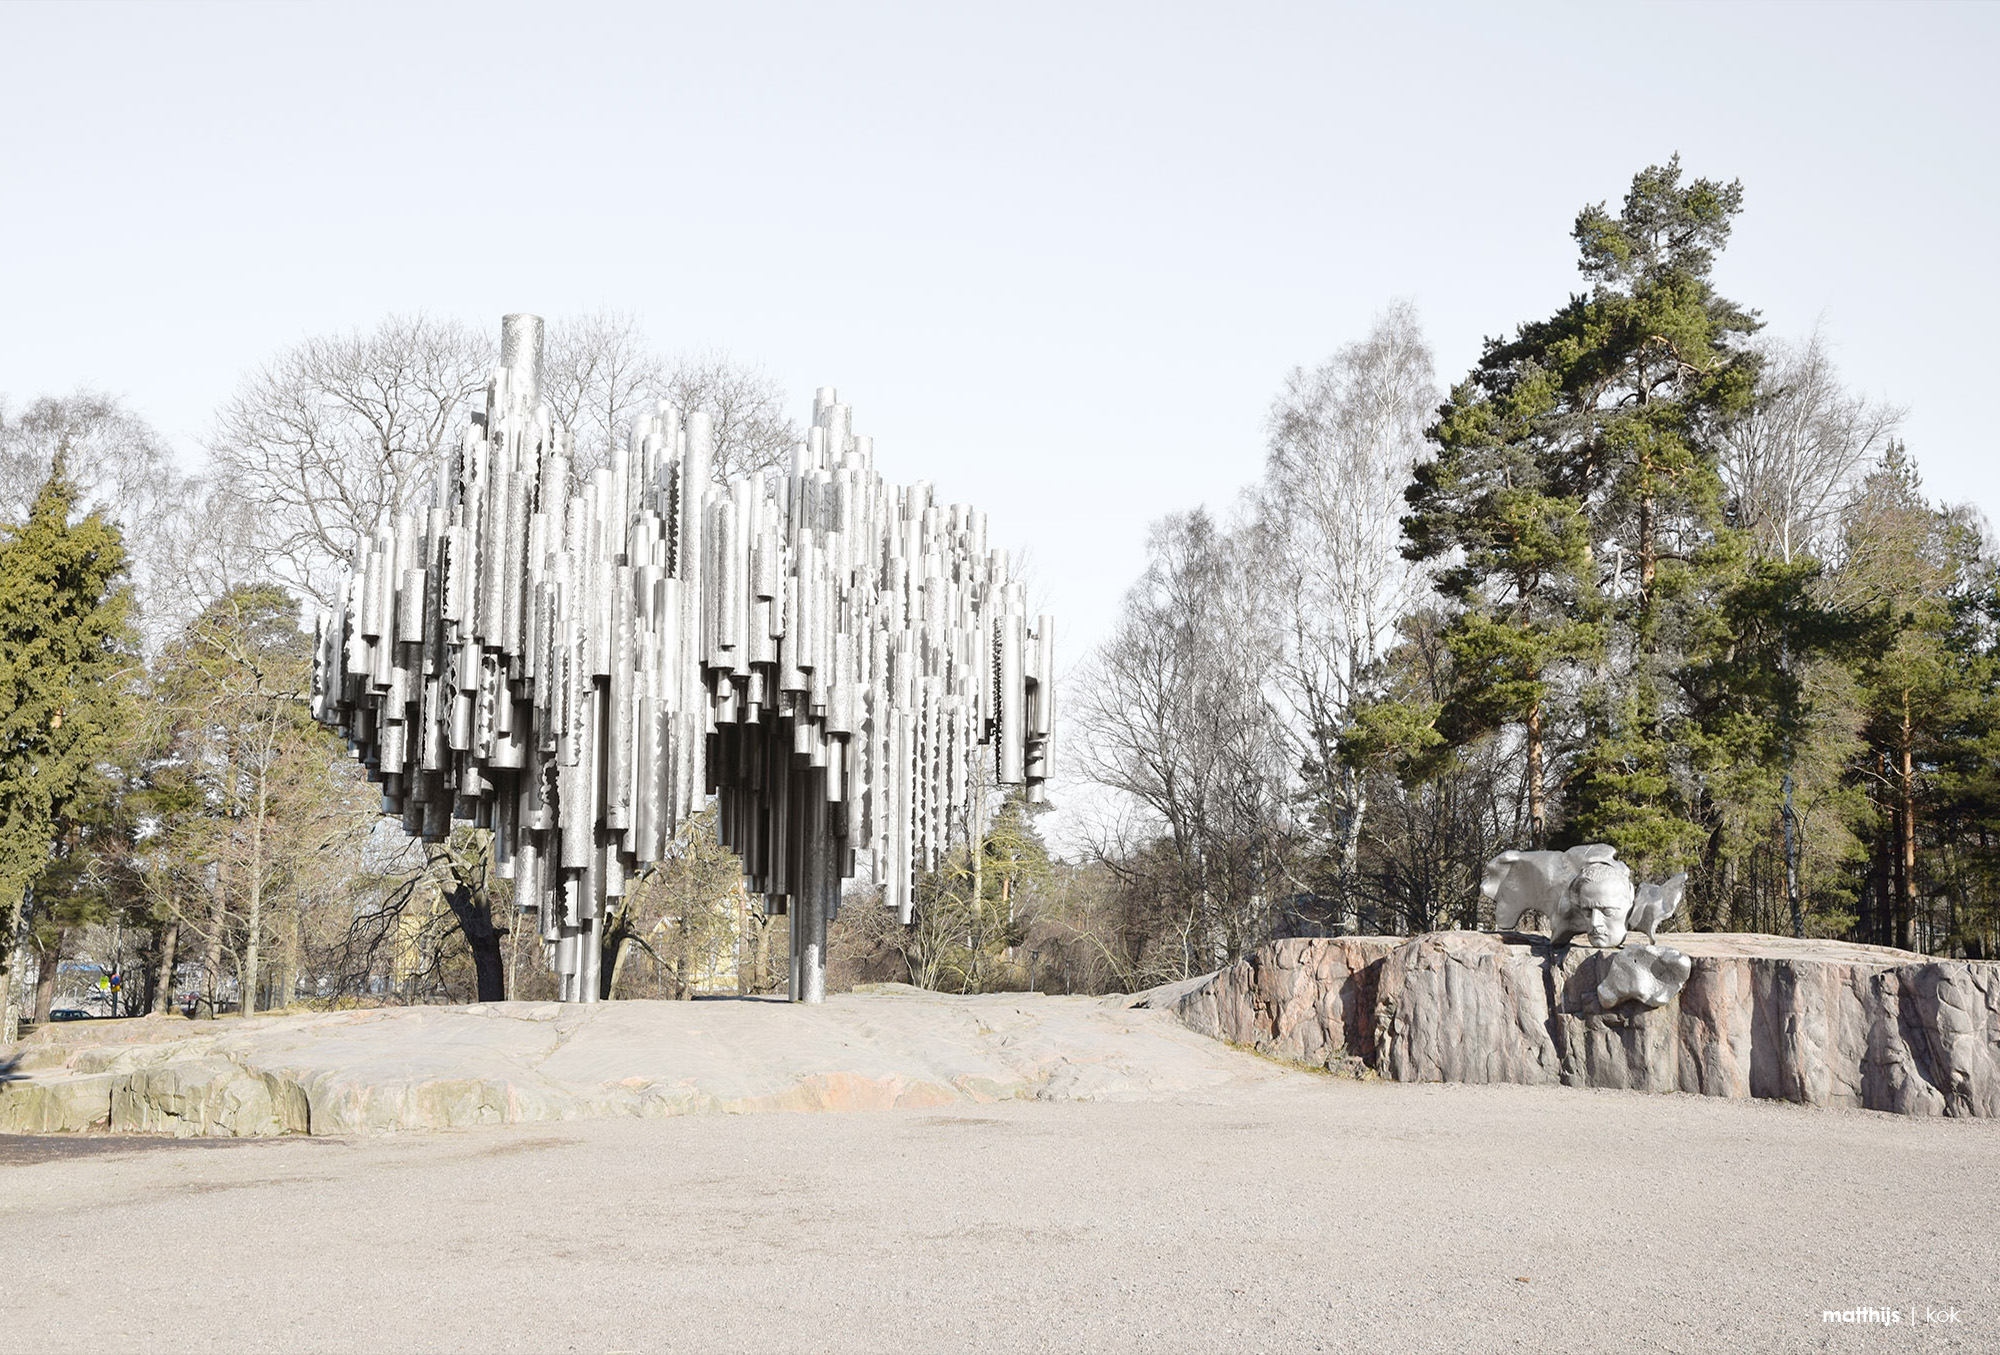 The Sibelius Monument by Eila Hiltunen, Helsinki, Finland | Photo by Matthijs Kok